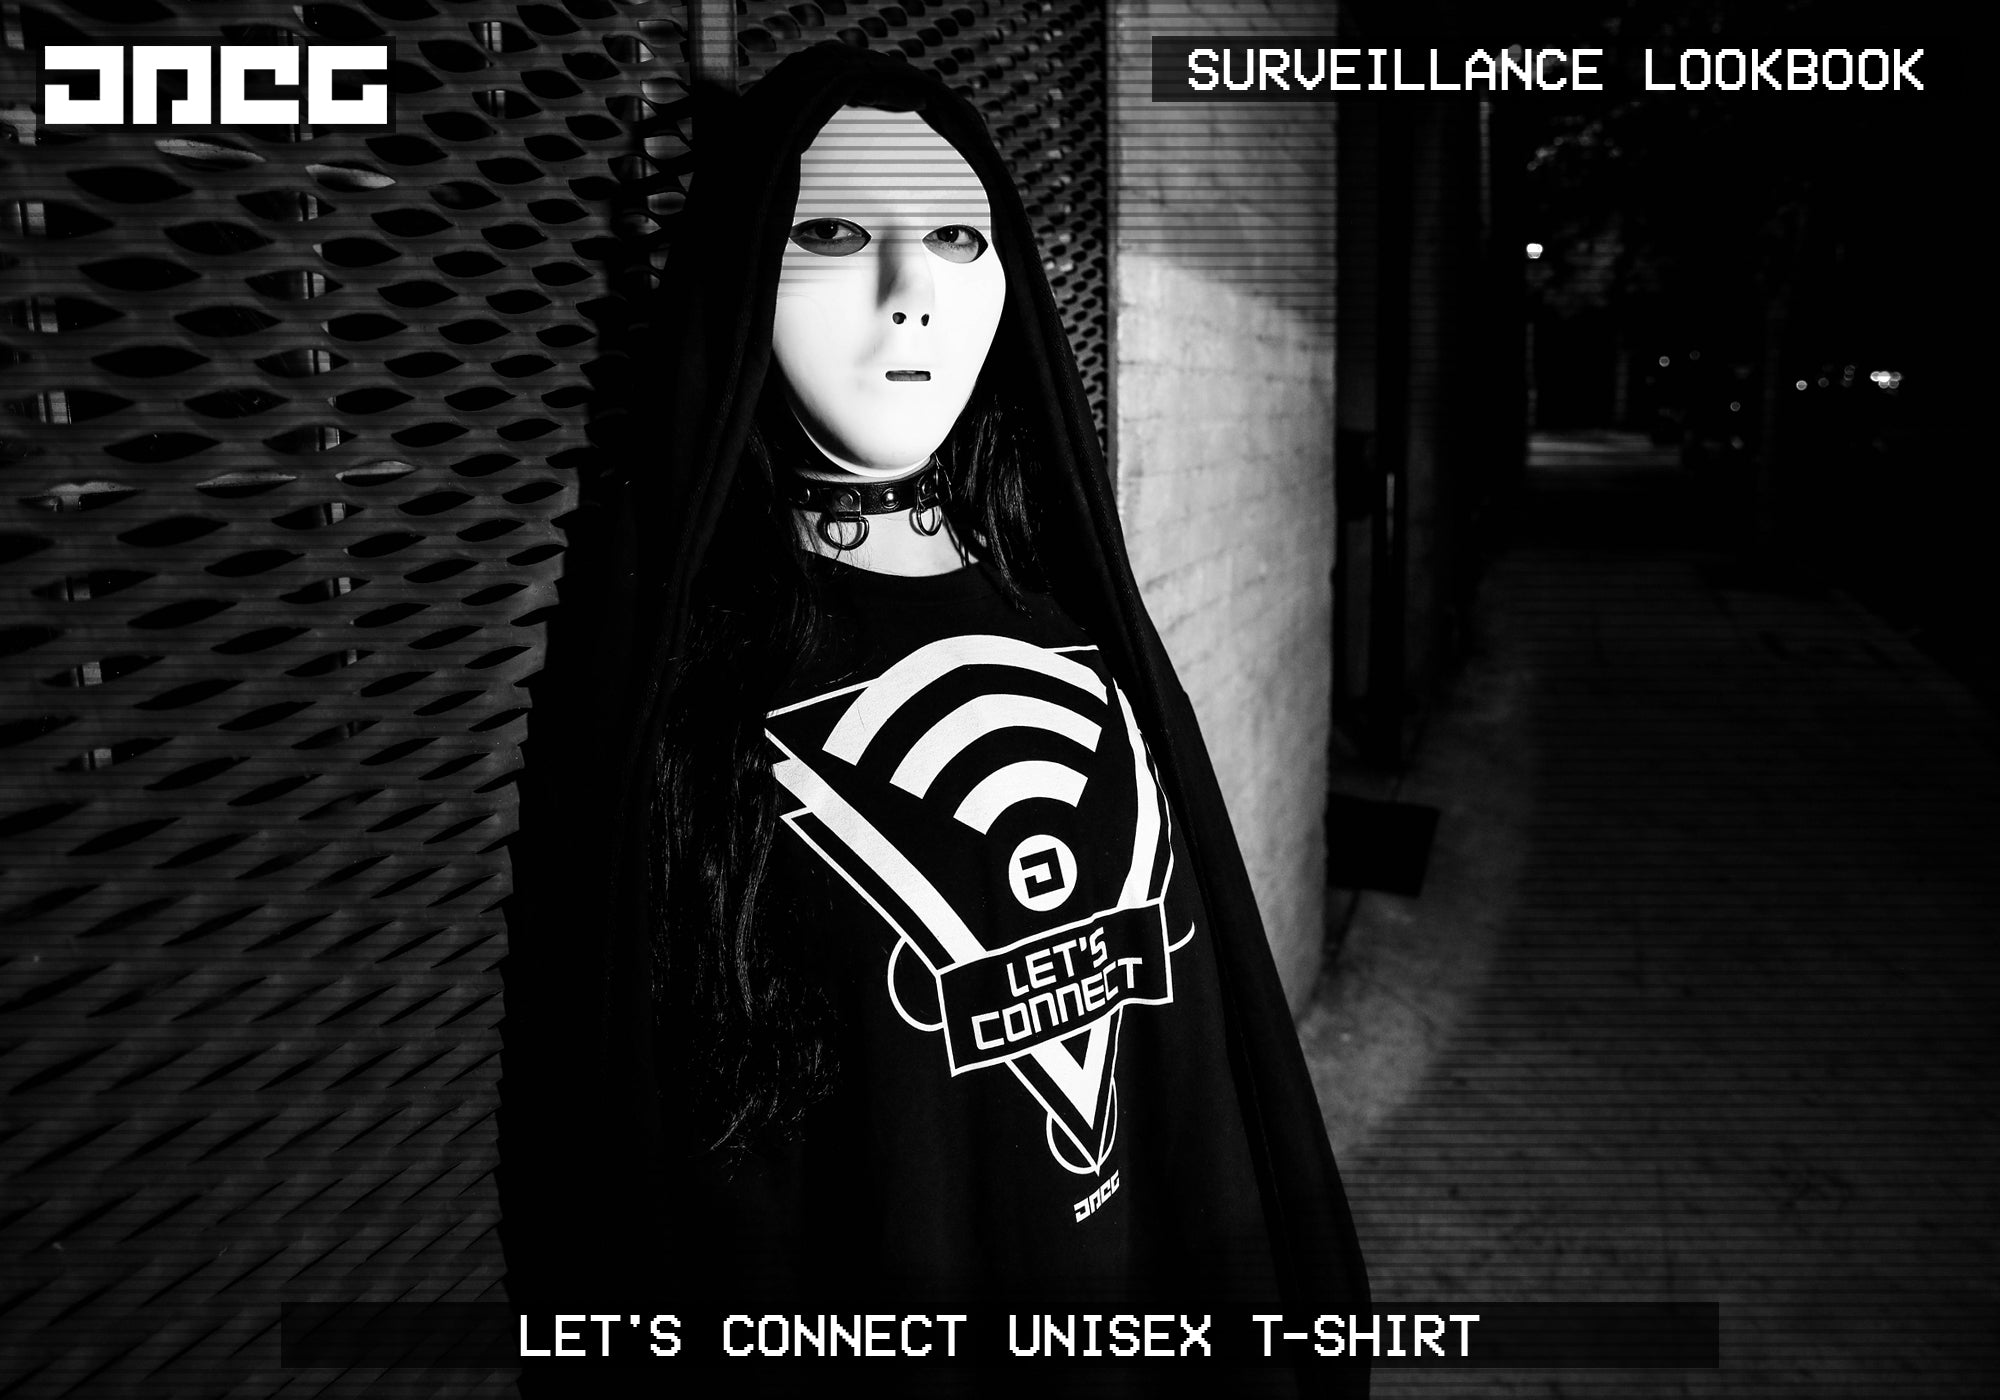 jpeg lookbook surveillance webstore cyber goth cult shop 11